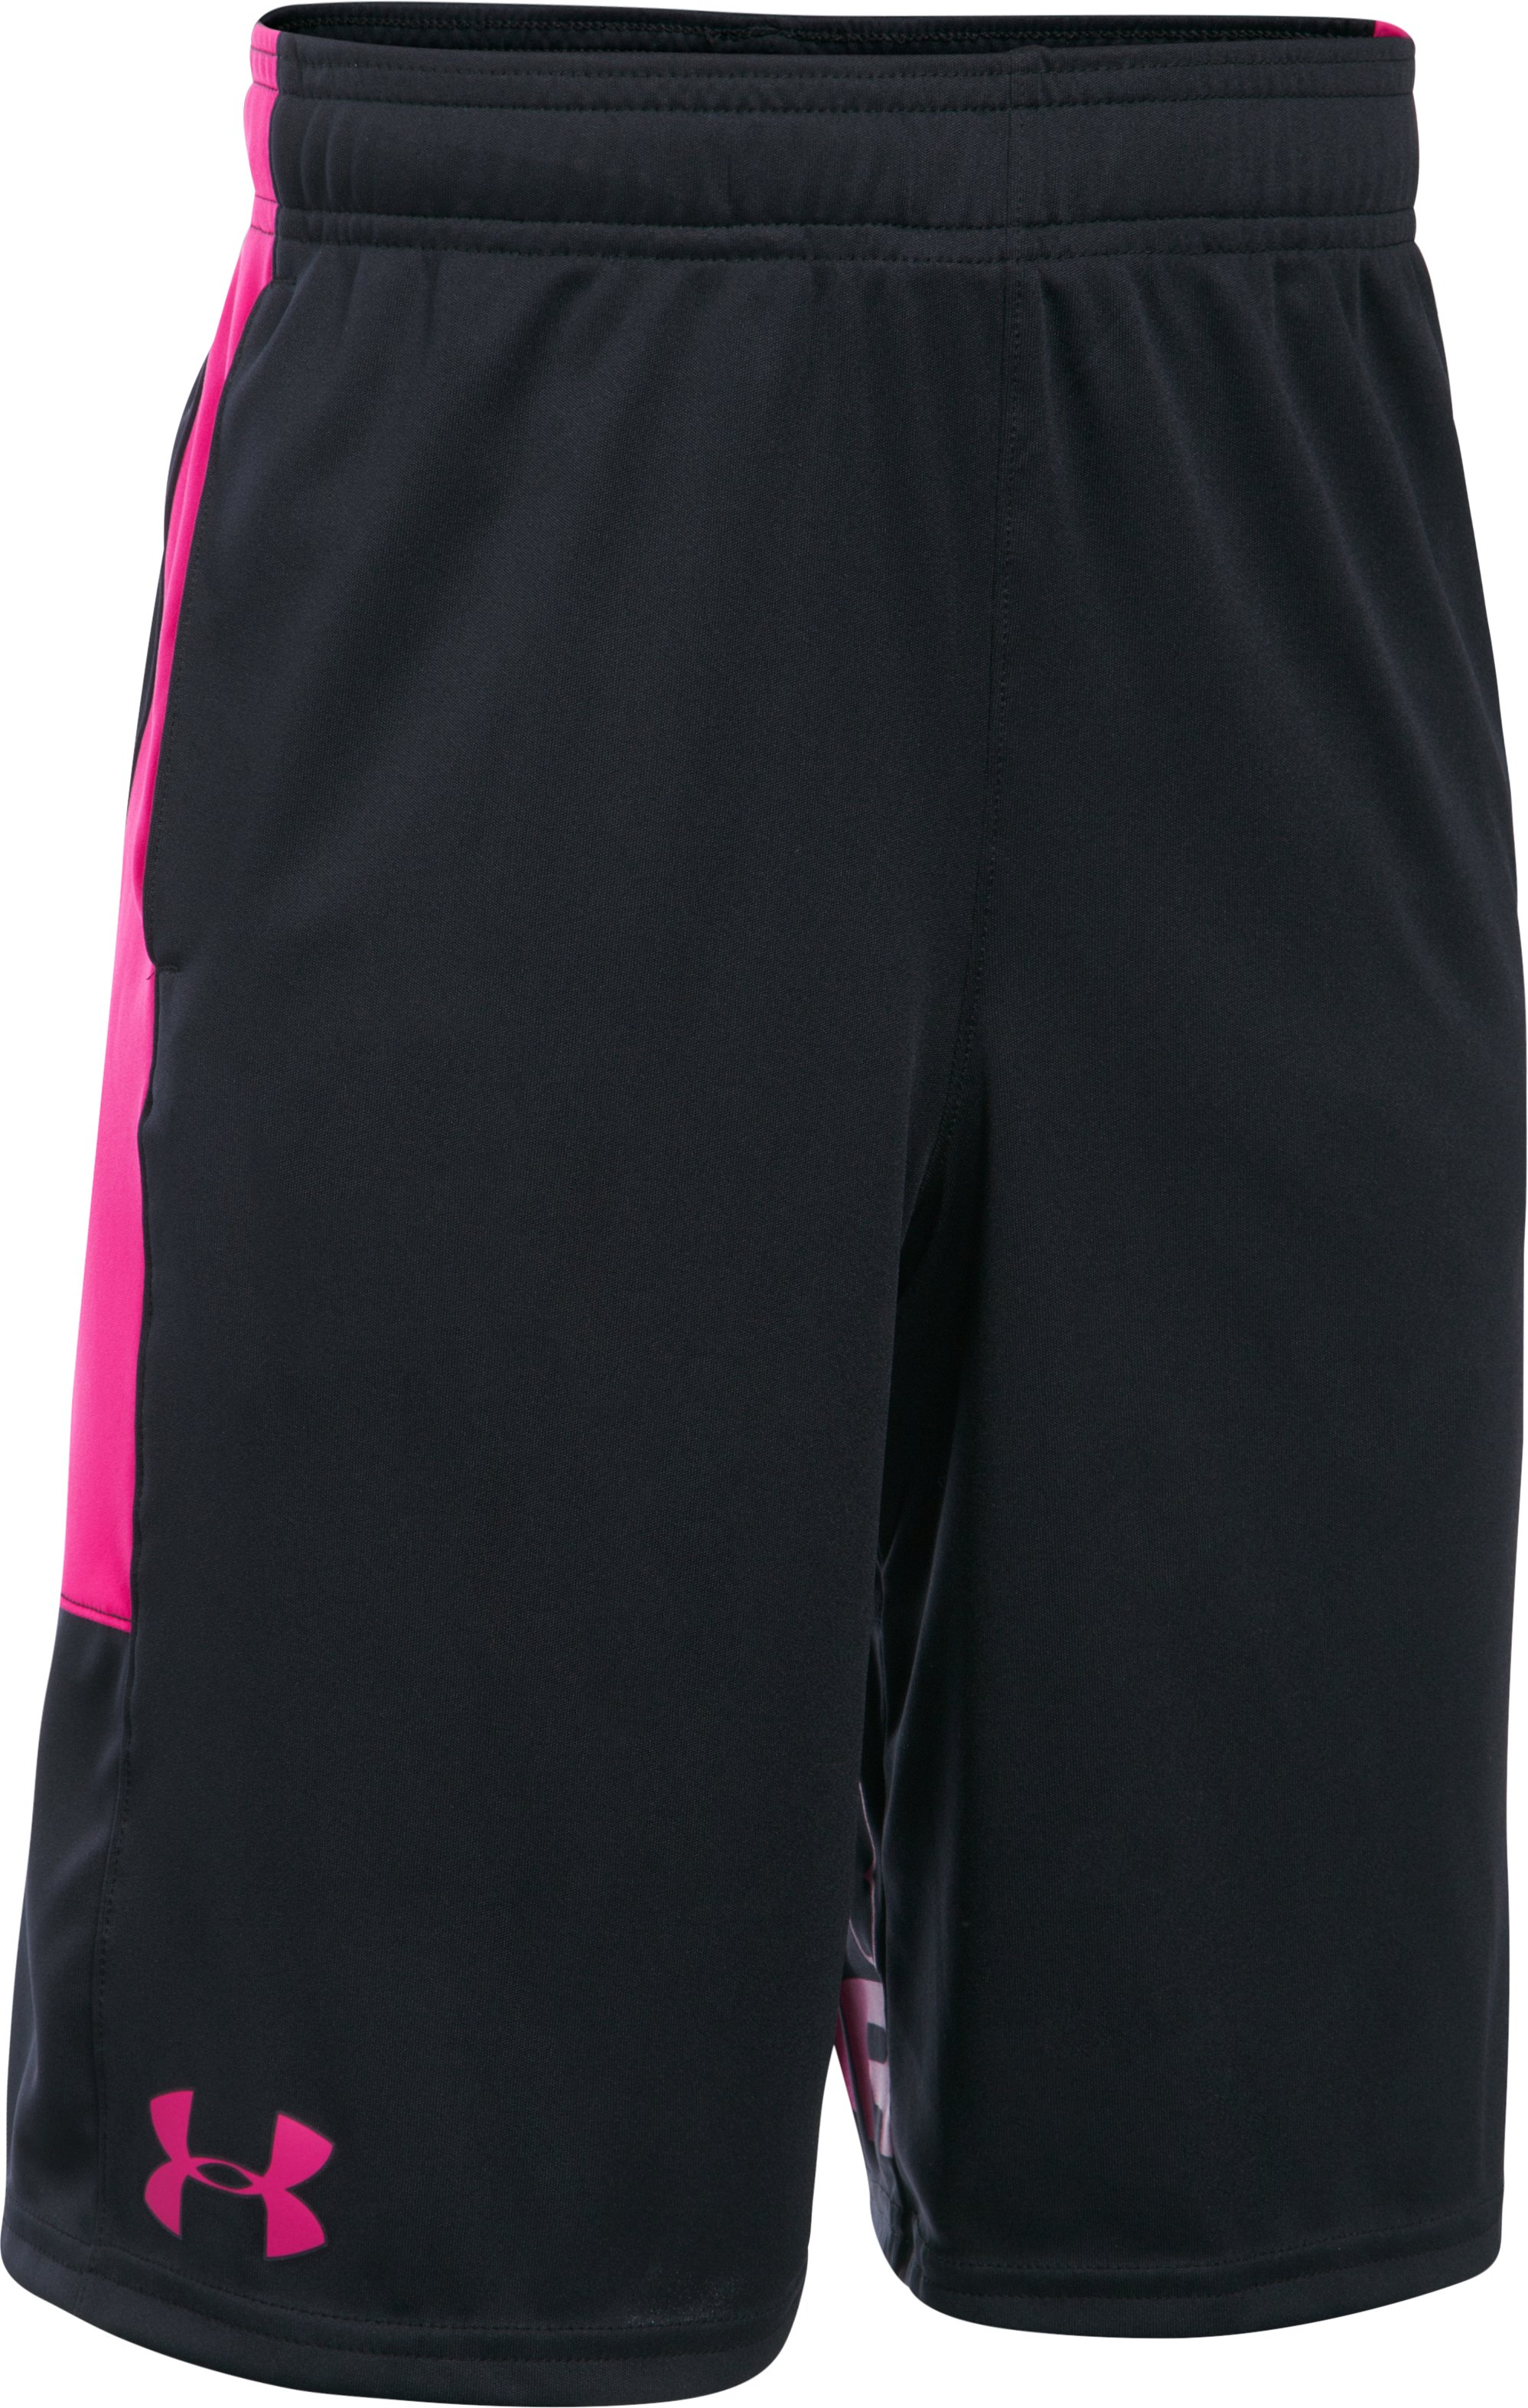 Boys' UA Stunt Shorts, Black , undefined